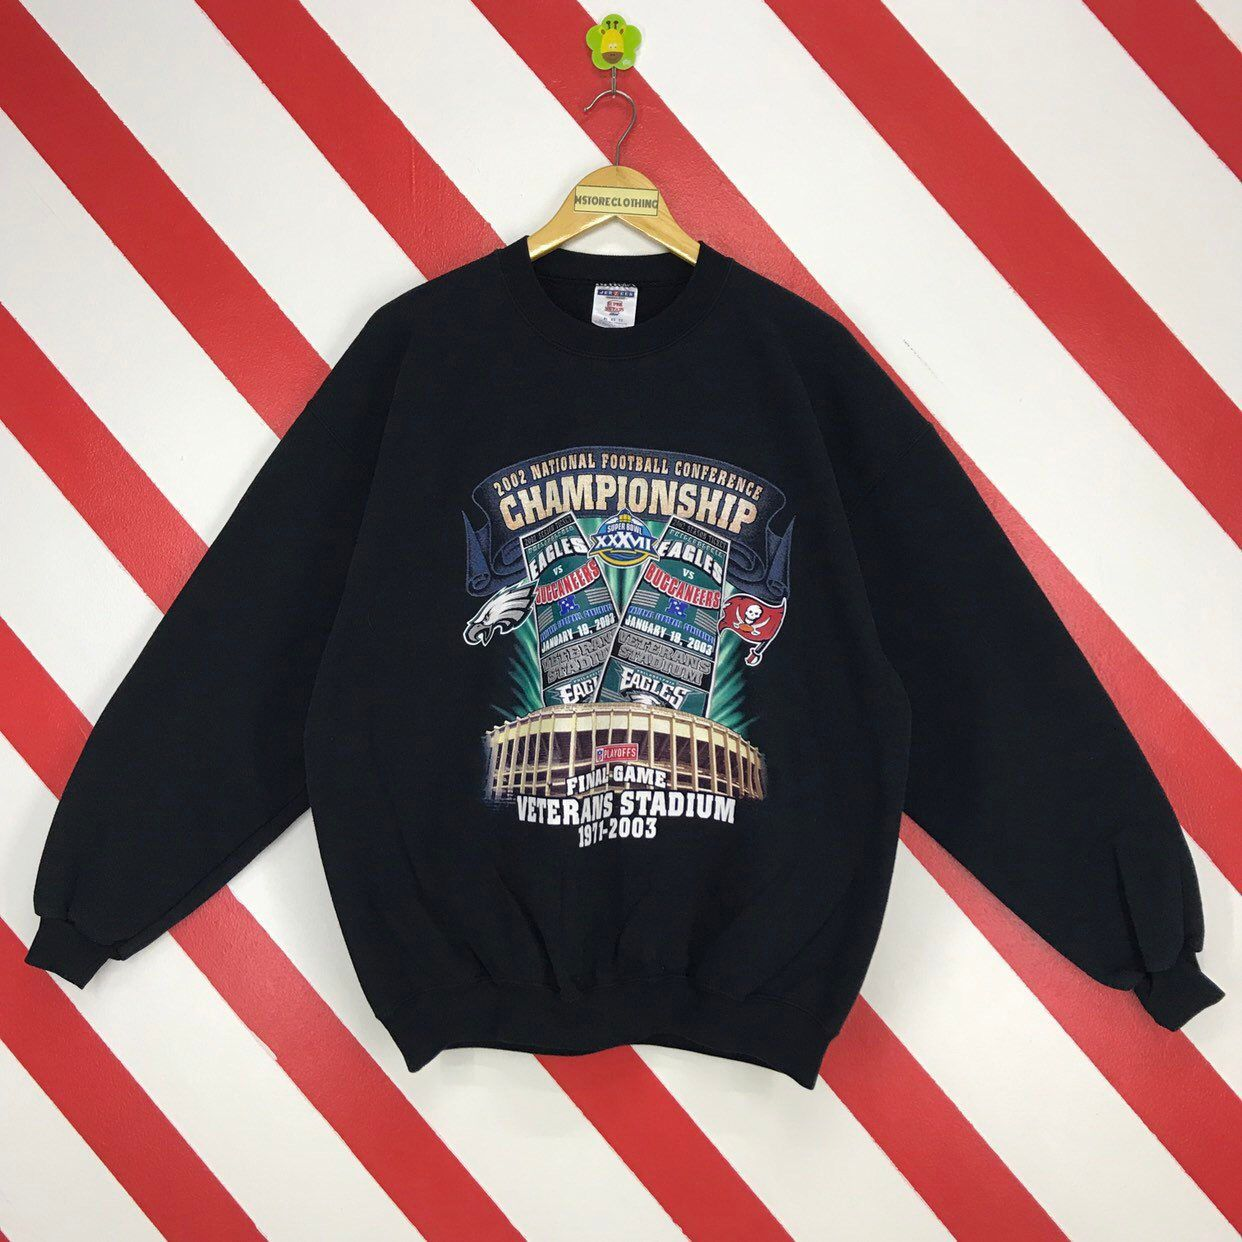 quality design 394da f348c Vintage Super Bowl Sweatshirt Crewneck Buccaneers Team ...